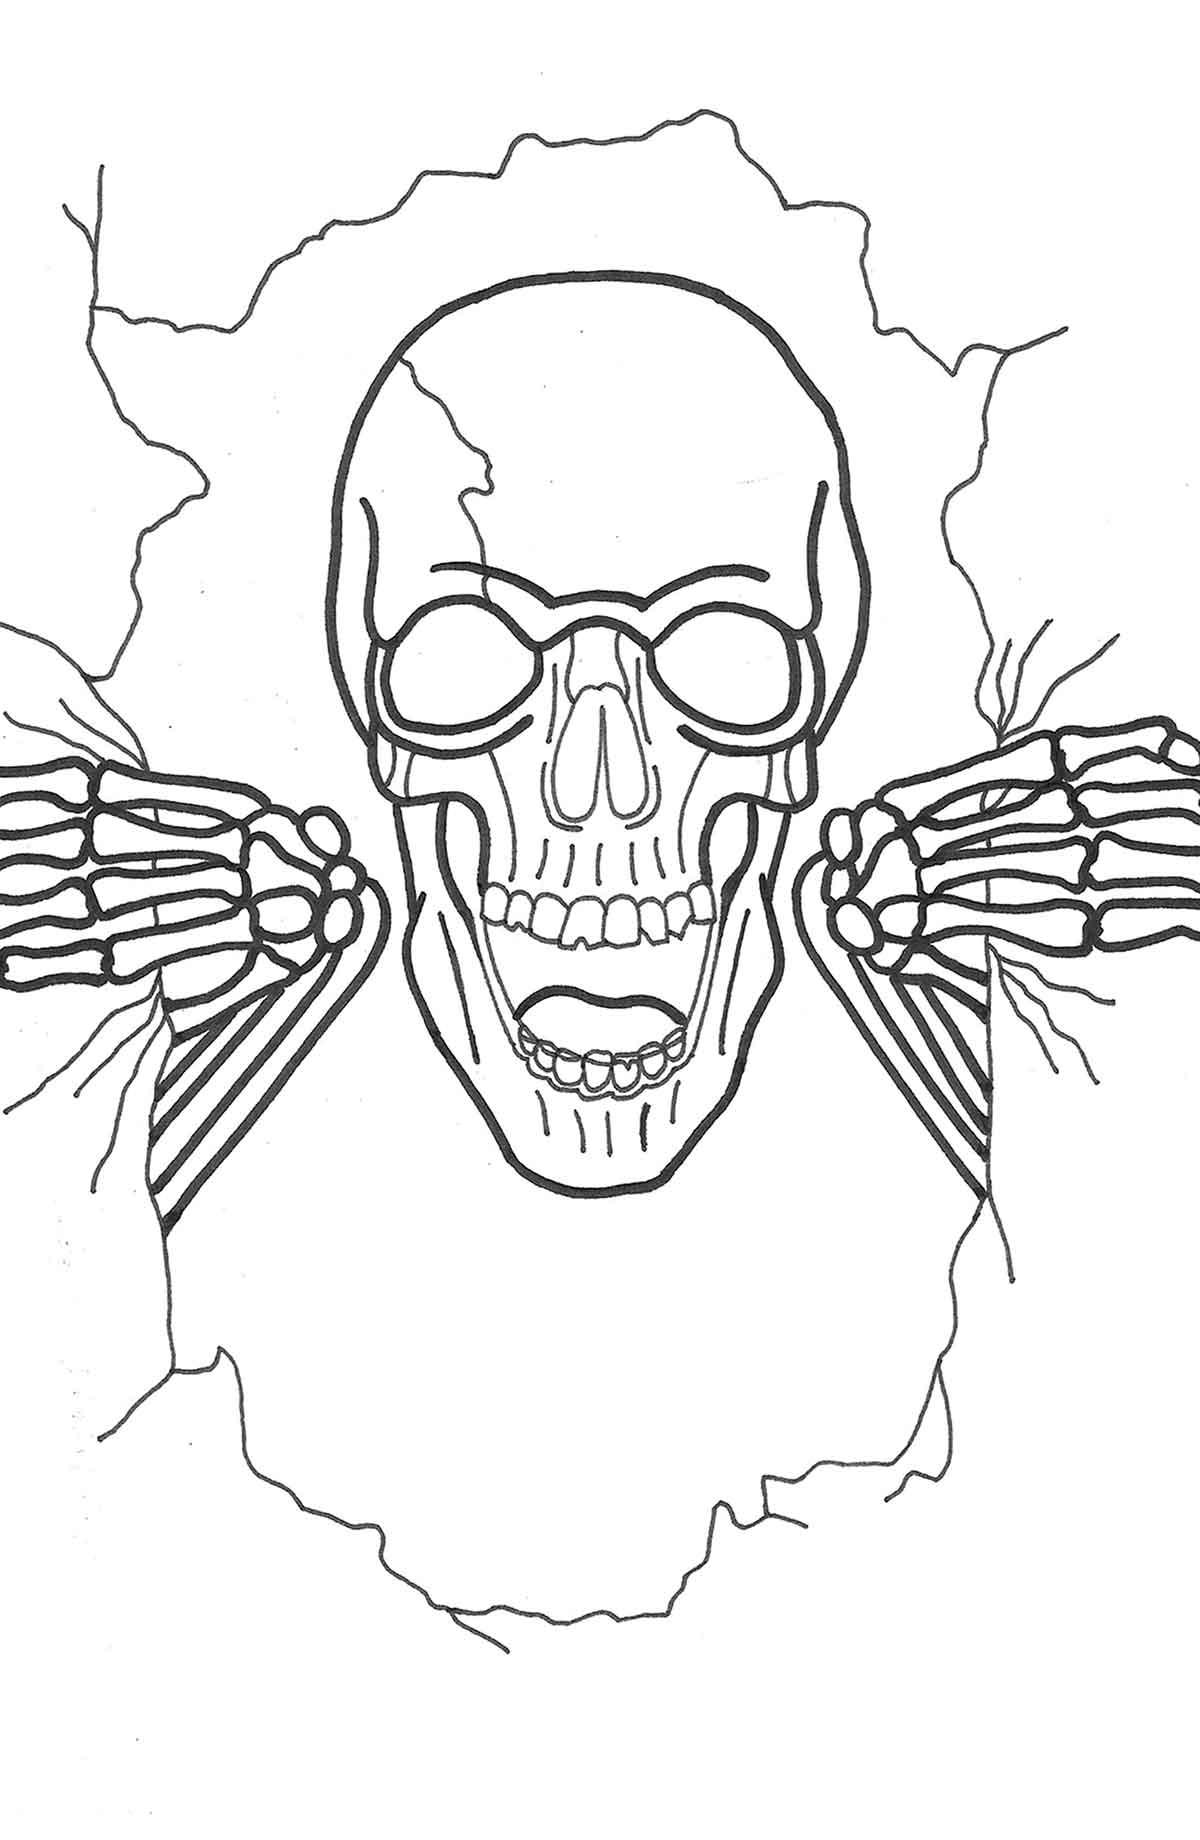 A marker sketch of the skeleton emerging from the poster.